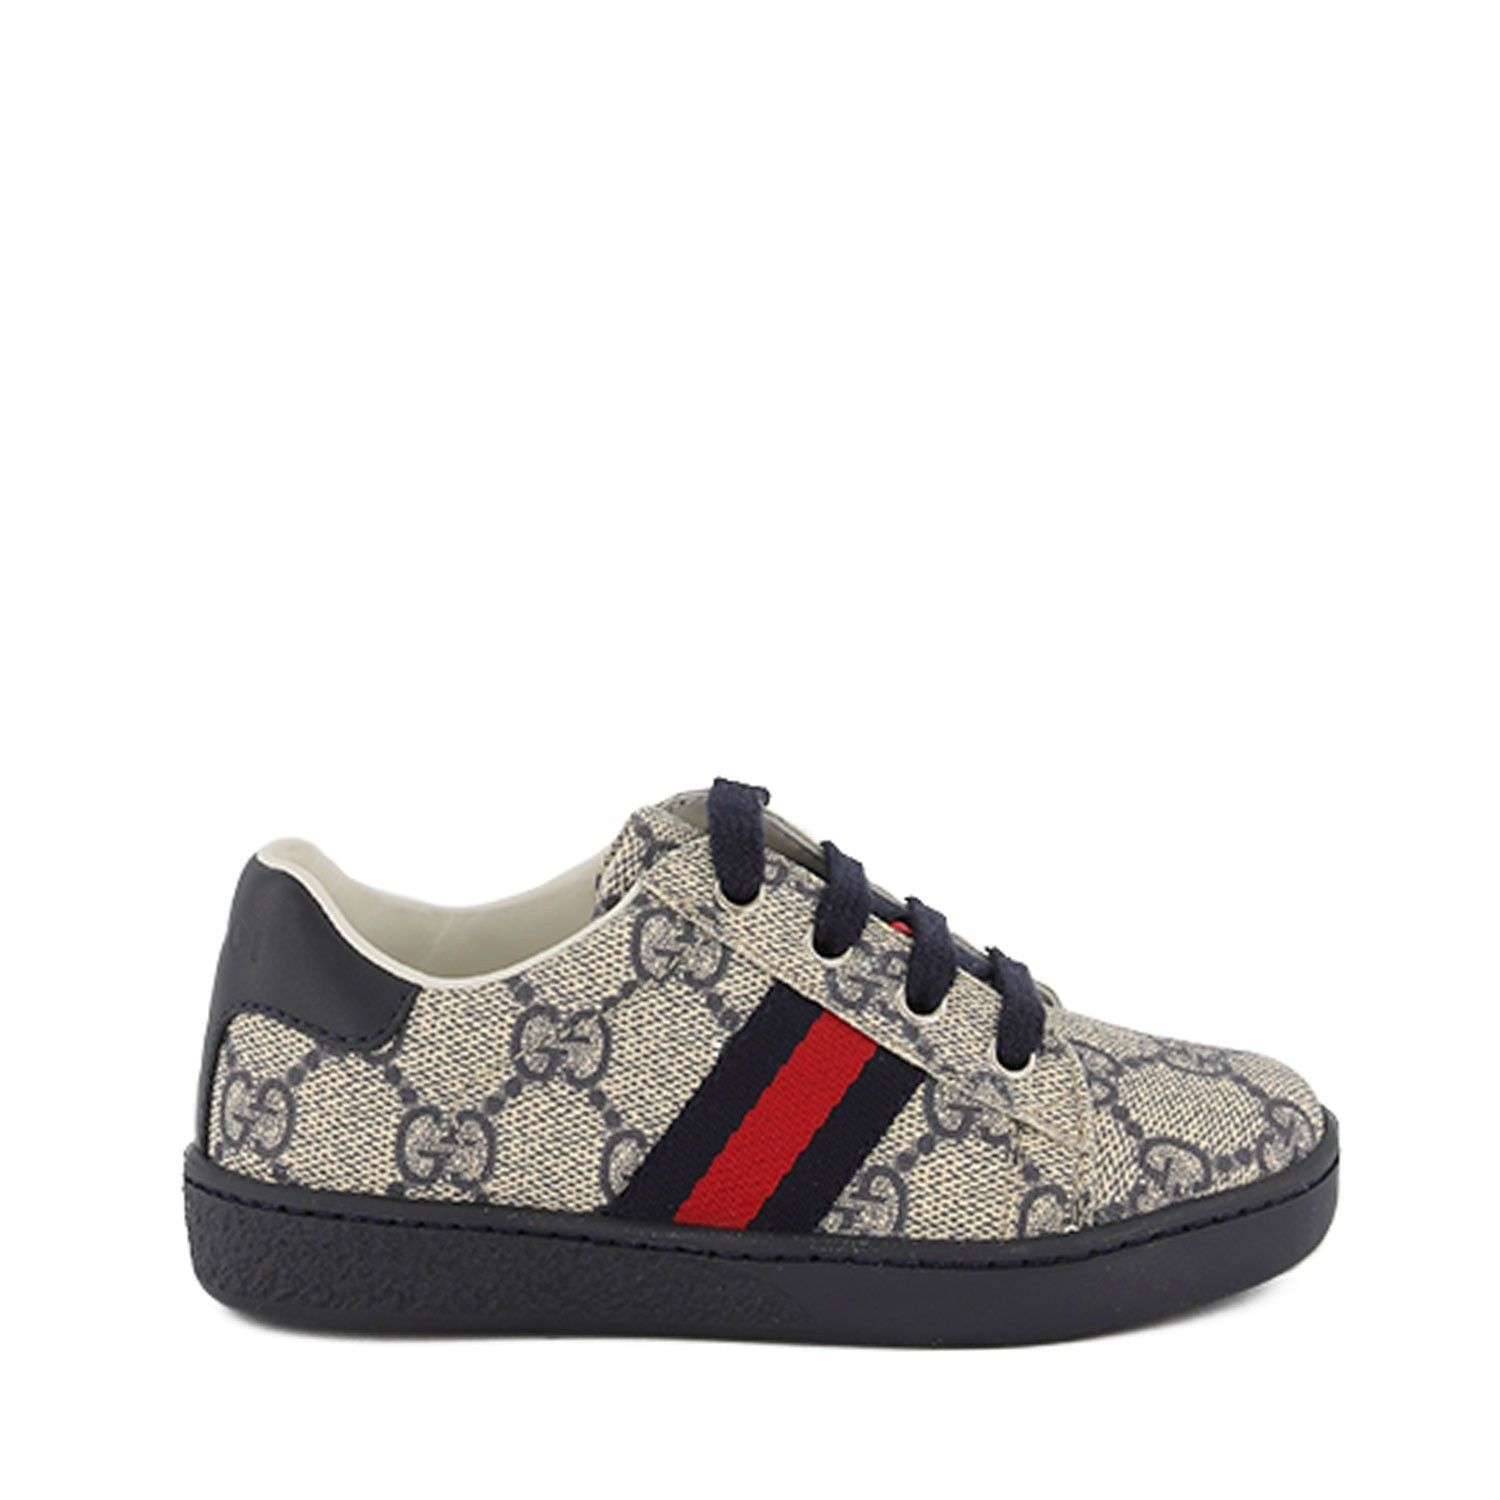 Picture of Gucci 433147 kids sneakers navy